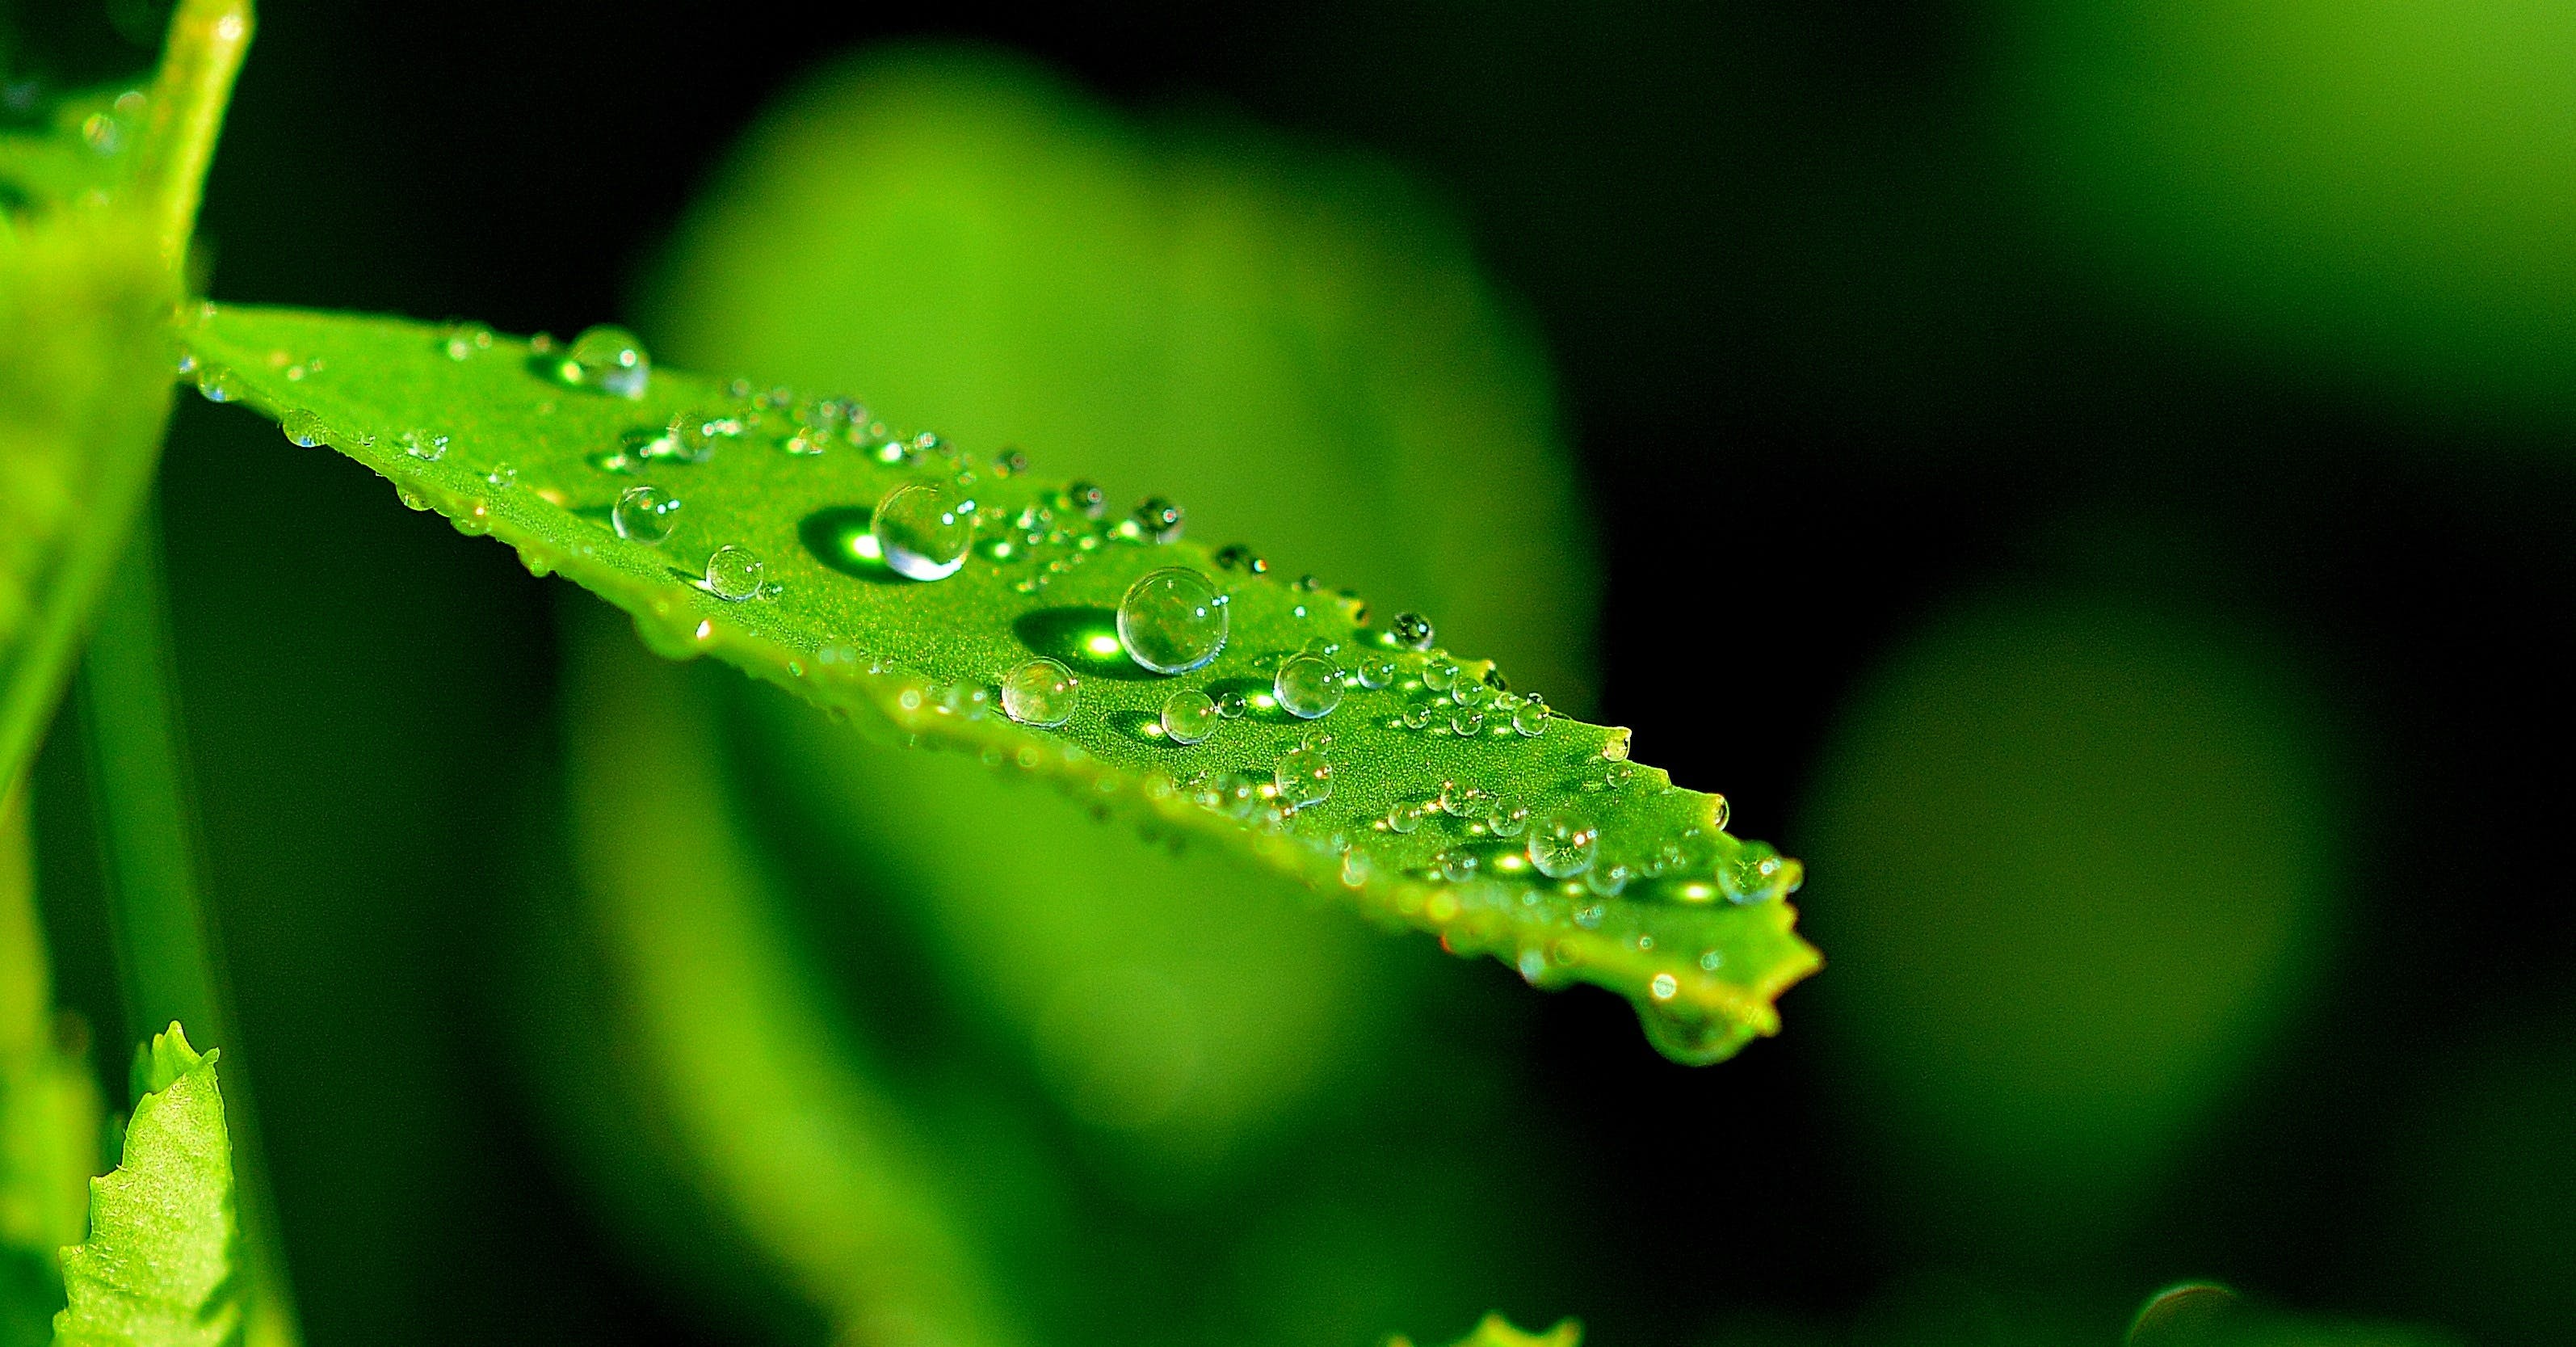 Droplets on Green Leaf in Close Up Photograph